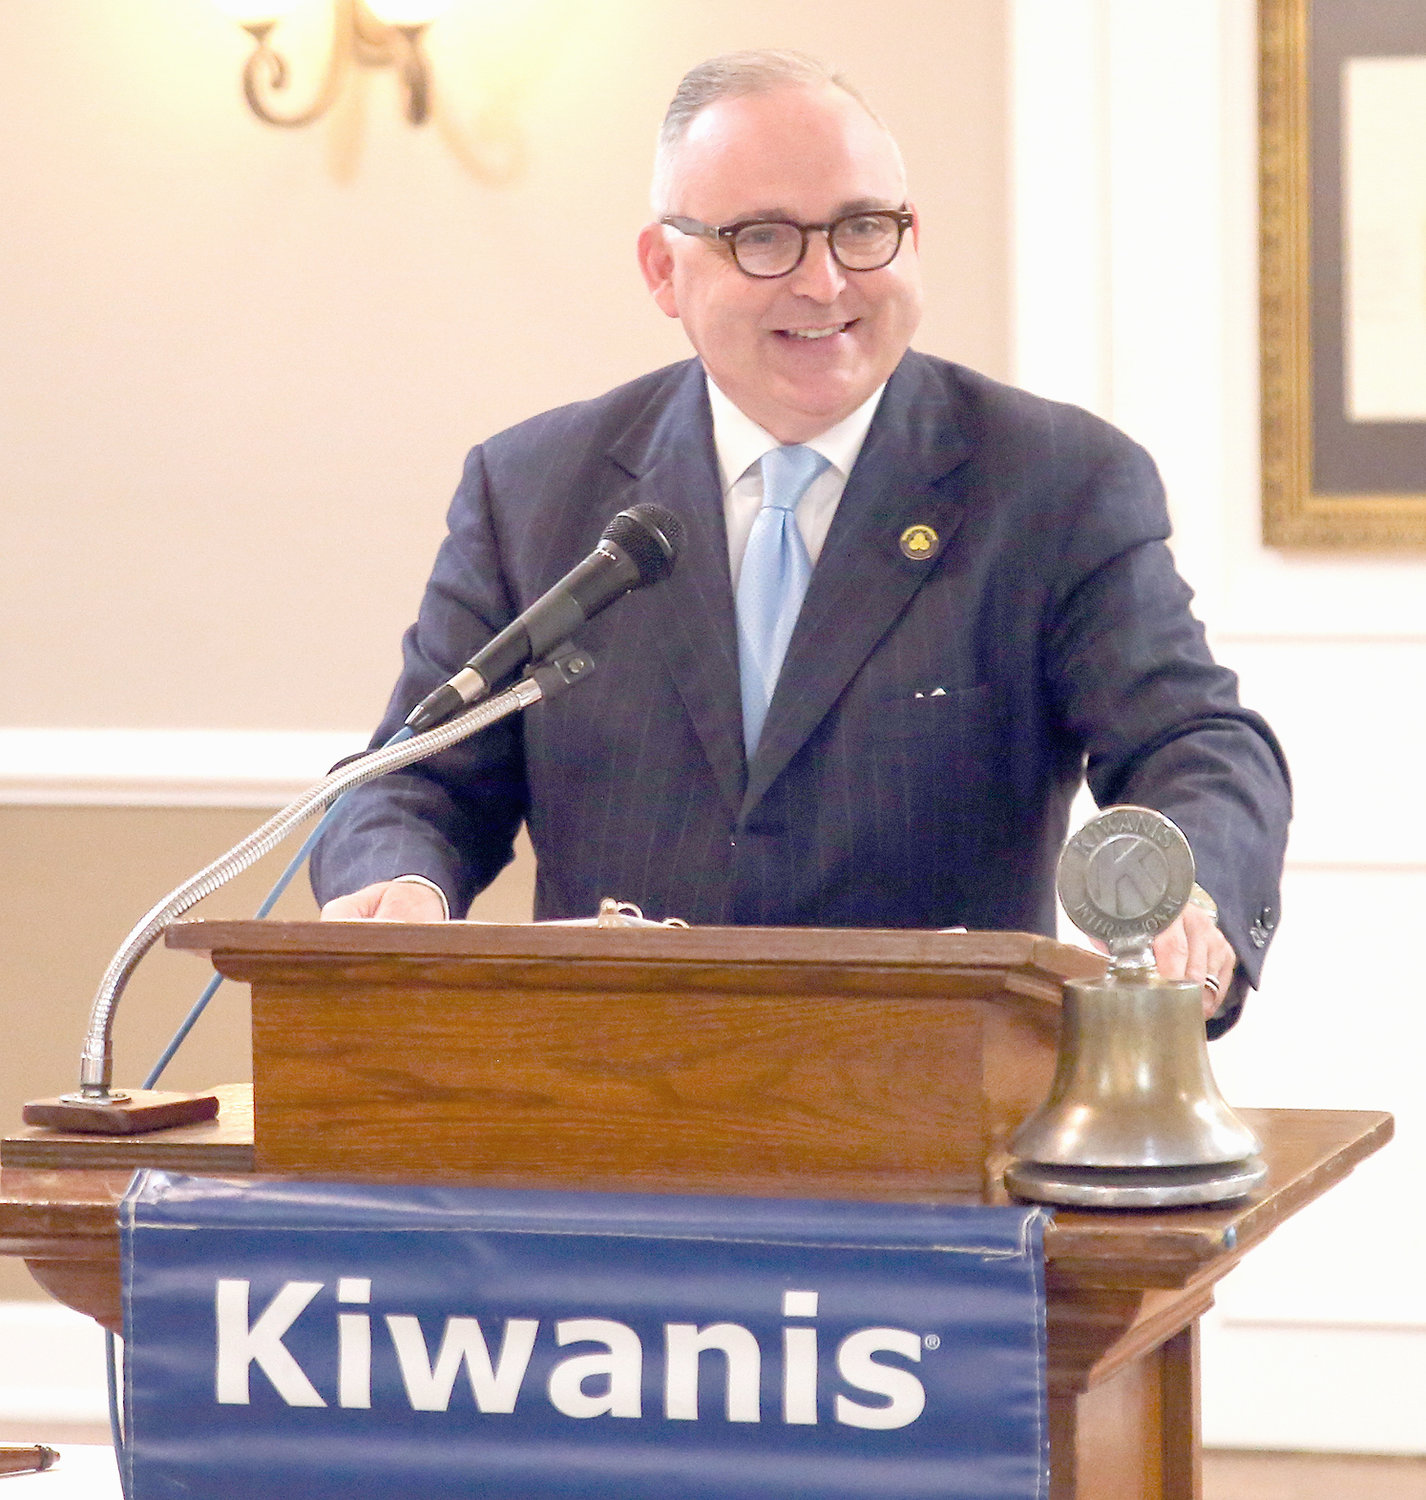 CLEVELAND MAYOR KEVIN BROOKS shares a laugh with his Kiwanis Club listeners while delivering his first State of the City address during the civic club's weekly luncheon at the downtown Elks Lodge. The new mayor touched on a variety of subjects including economic development, public safety, downtown revitalization, redevelopment of the old Whirlpool manufacturing site, education and infrastructure, among many others.